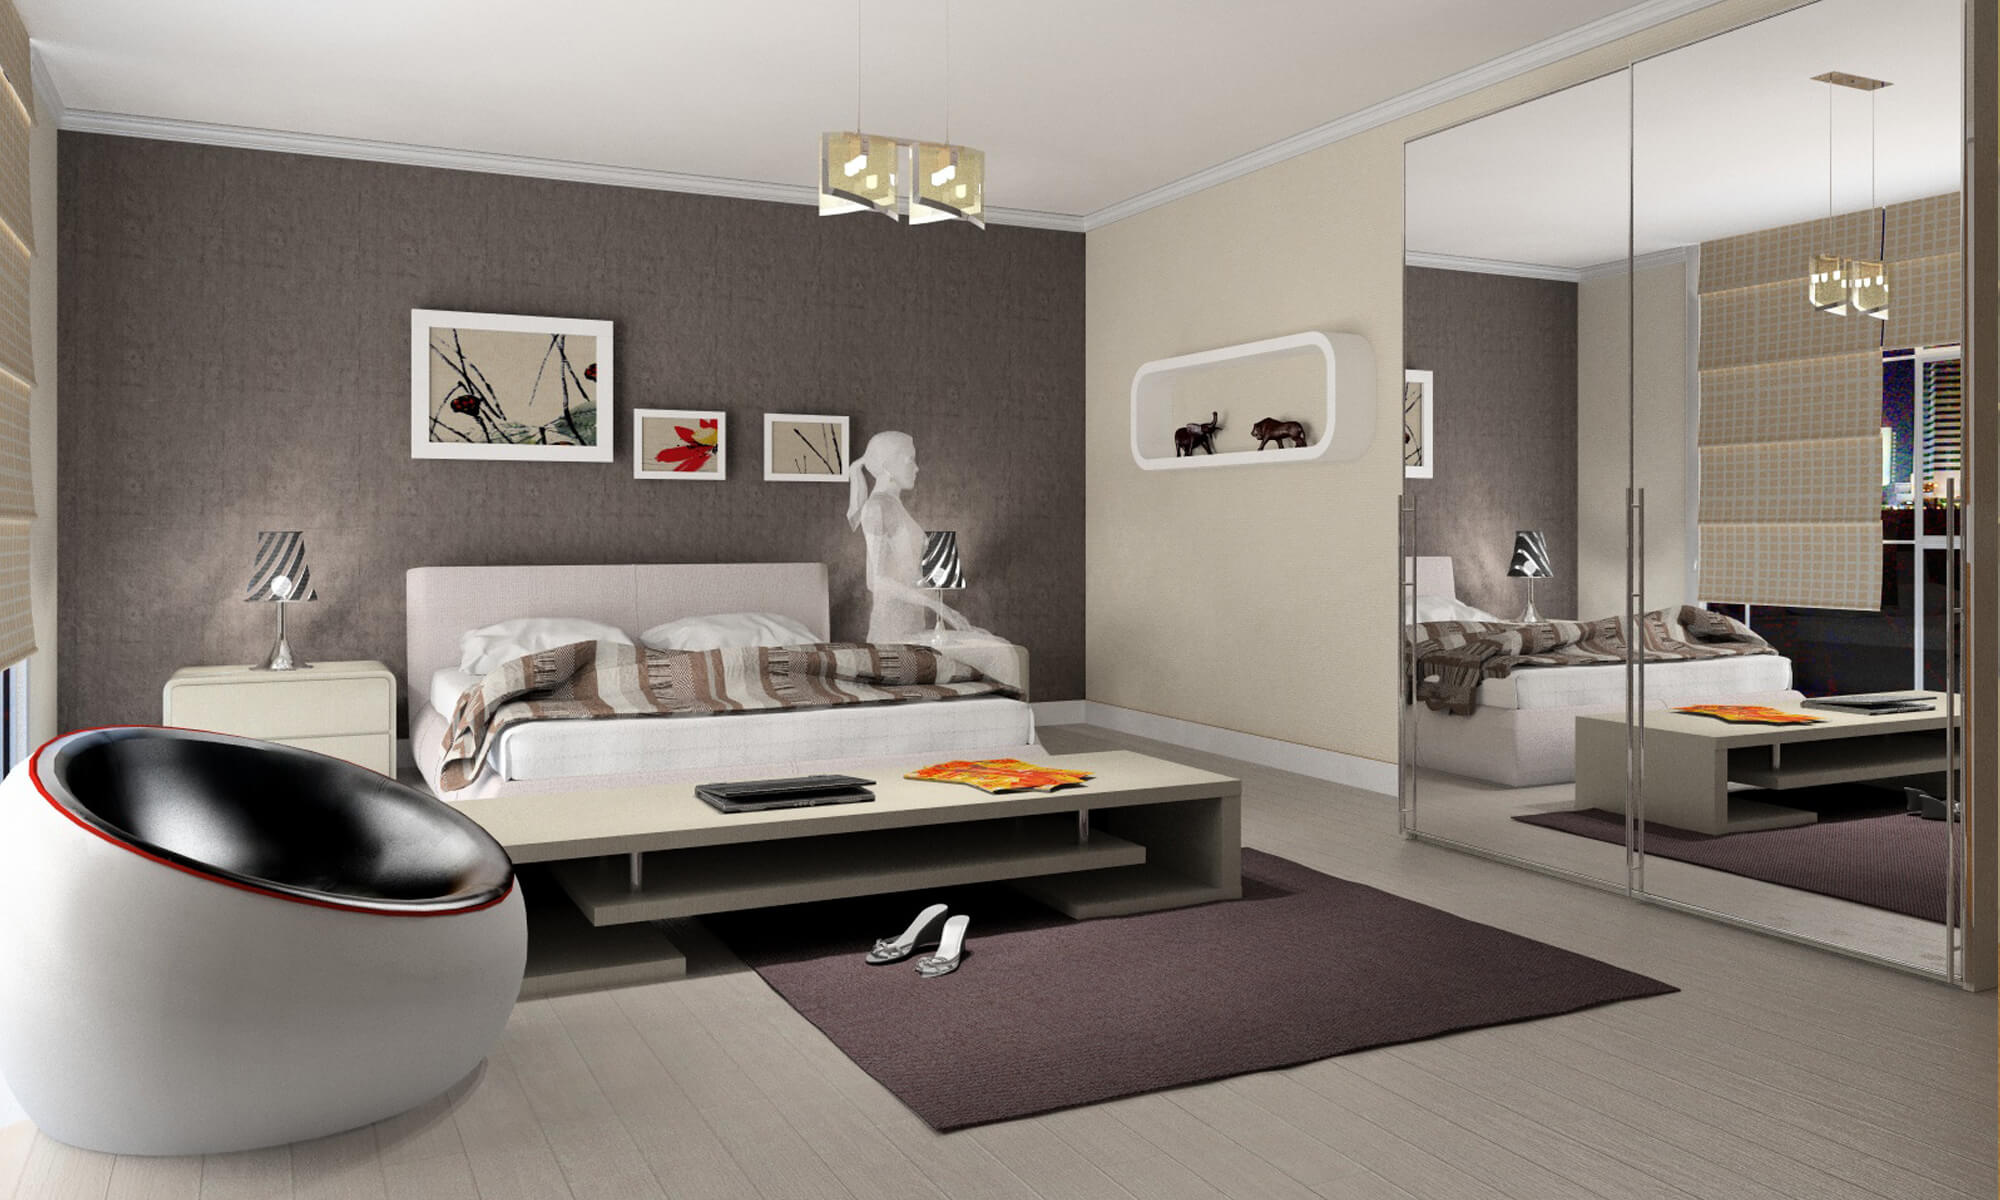 Projets 3d chambres intericad for Chambre 3d